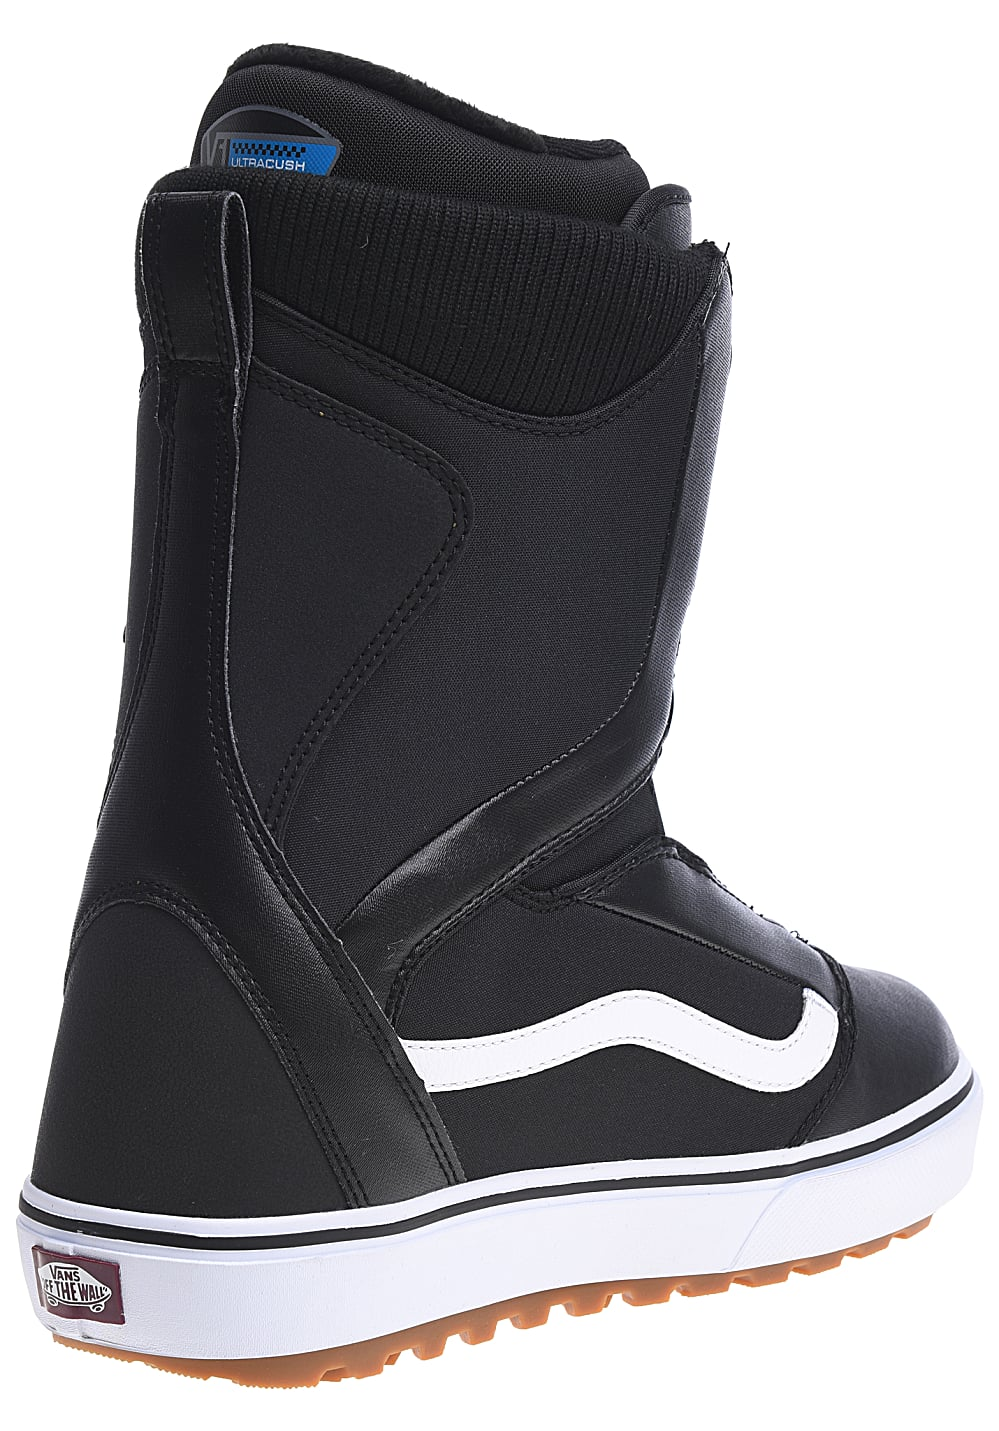 596fb6a093 Vans Encore OG - Snowboard Boots for Women - Black - Planet Sports